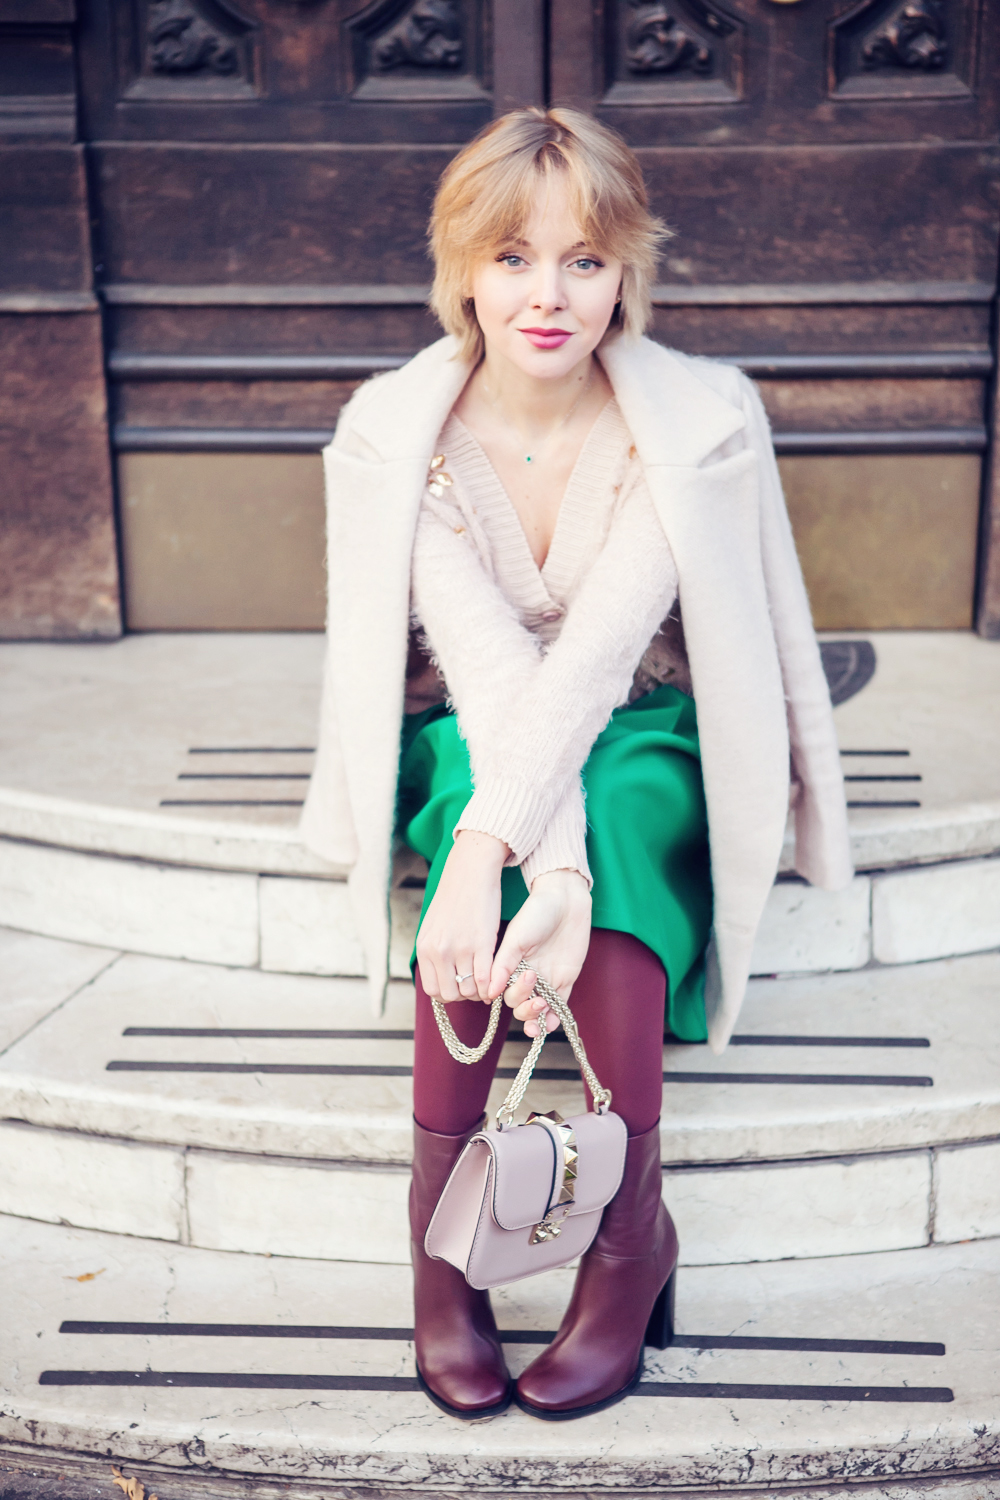 darya kamalova thecablook fashion blog russian blogger italy moda street style pixie short hair fashion blogger chichwish green midi skirt pale rose sweater cocon coat asos ankle boots valentibo stud rock bag brescia-16 copy